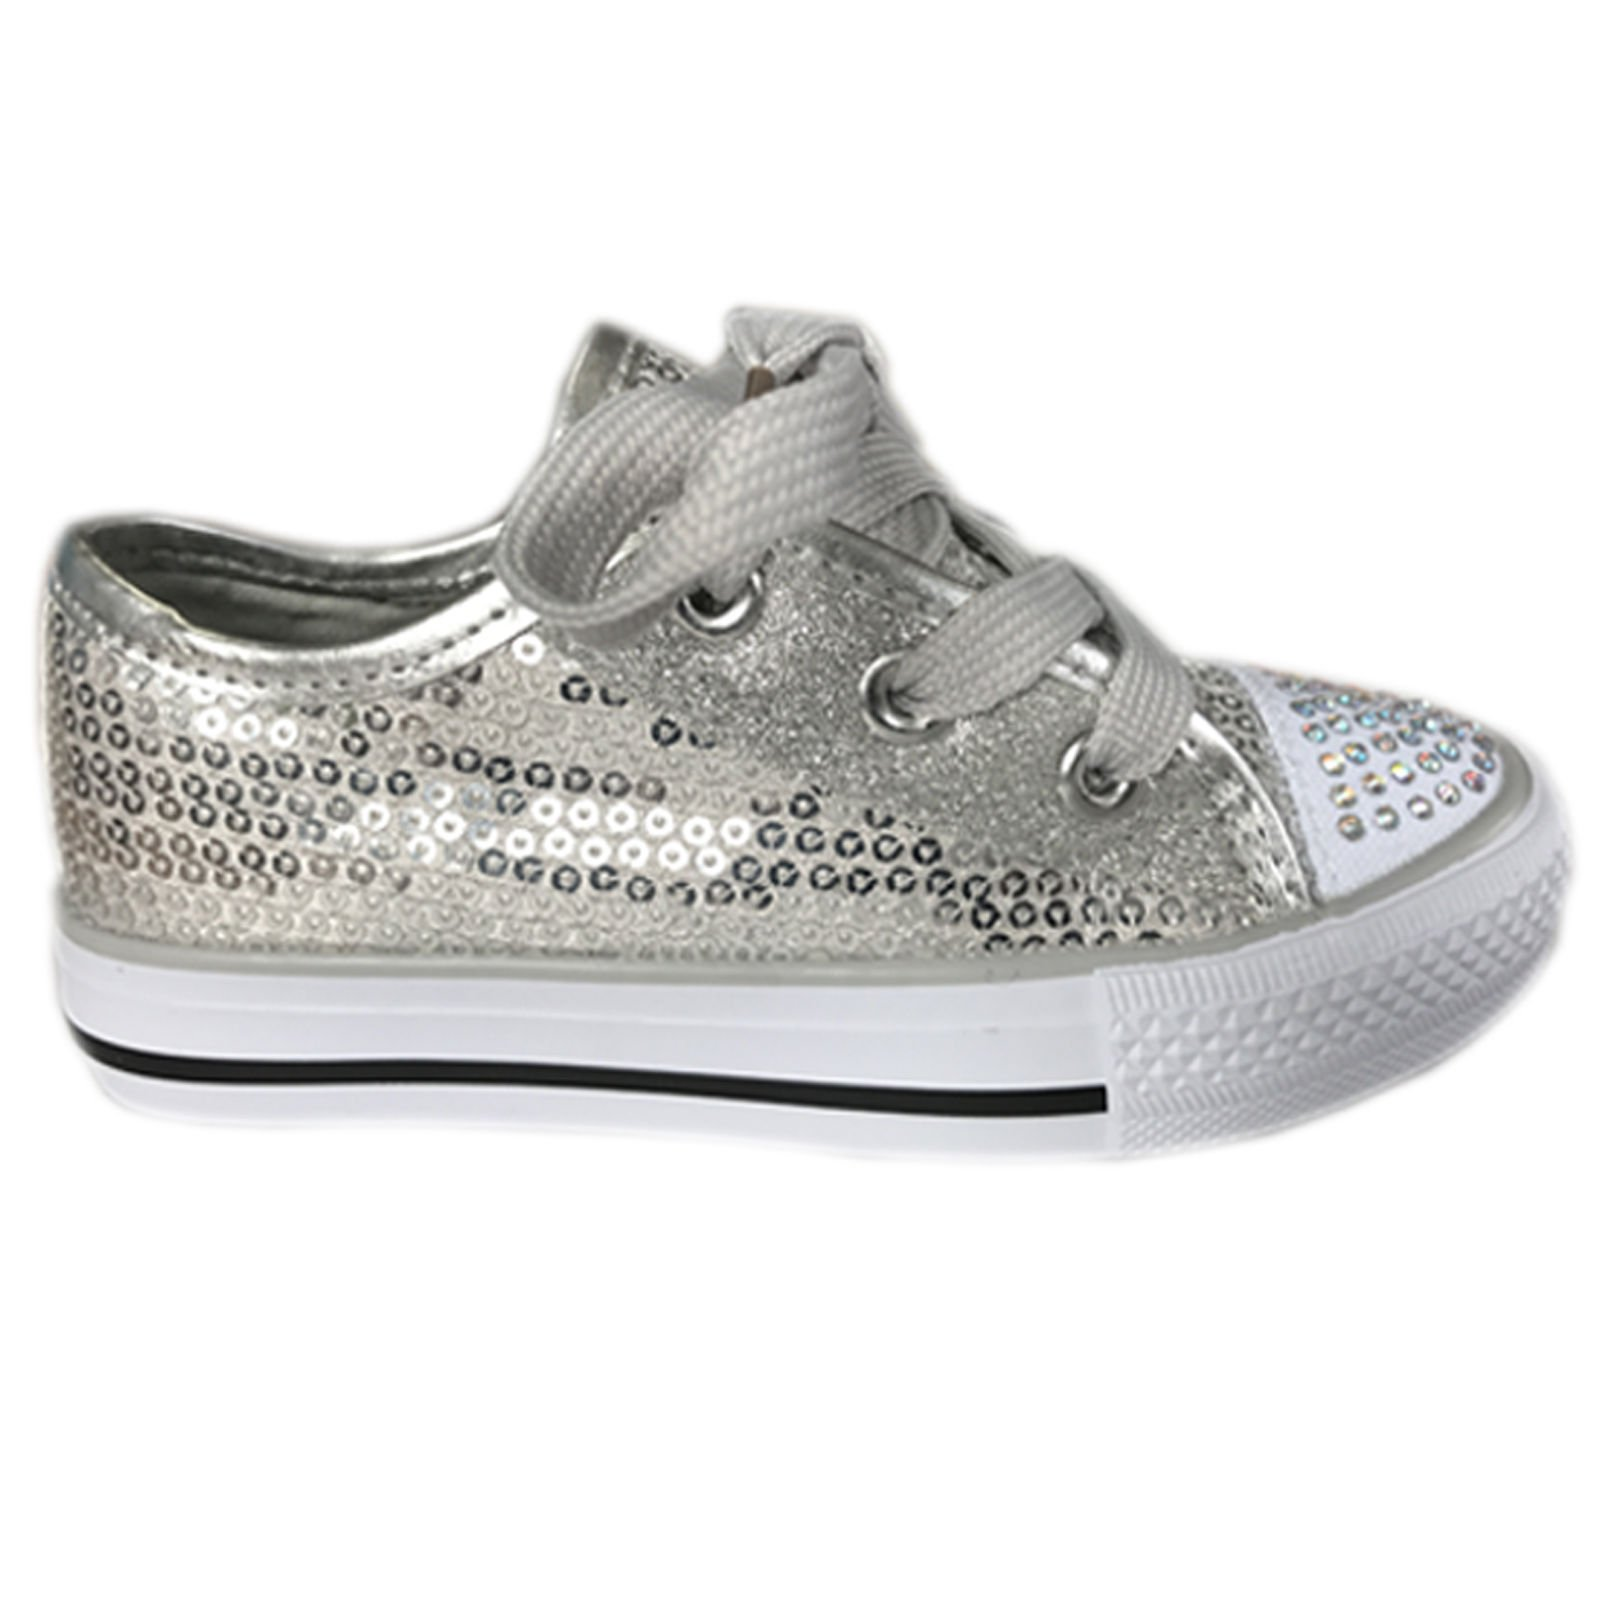 GIRLS KIDS DIAMANTE FLORAL CANVAS SHOES CASUAL PUMPS PLIMSOLLS SNEAKERS TRAINERS